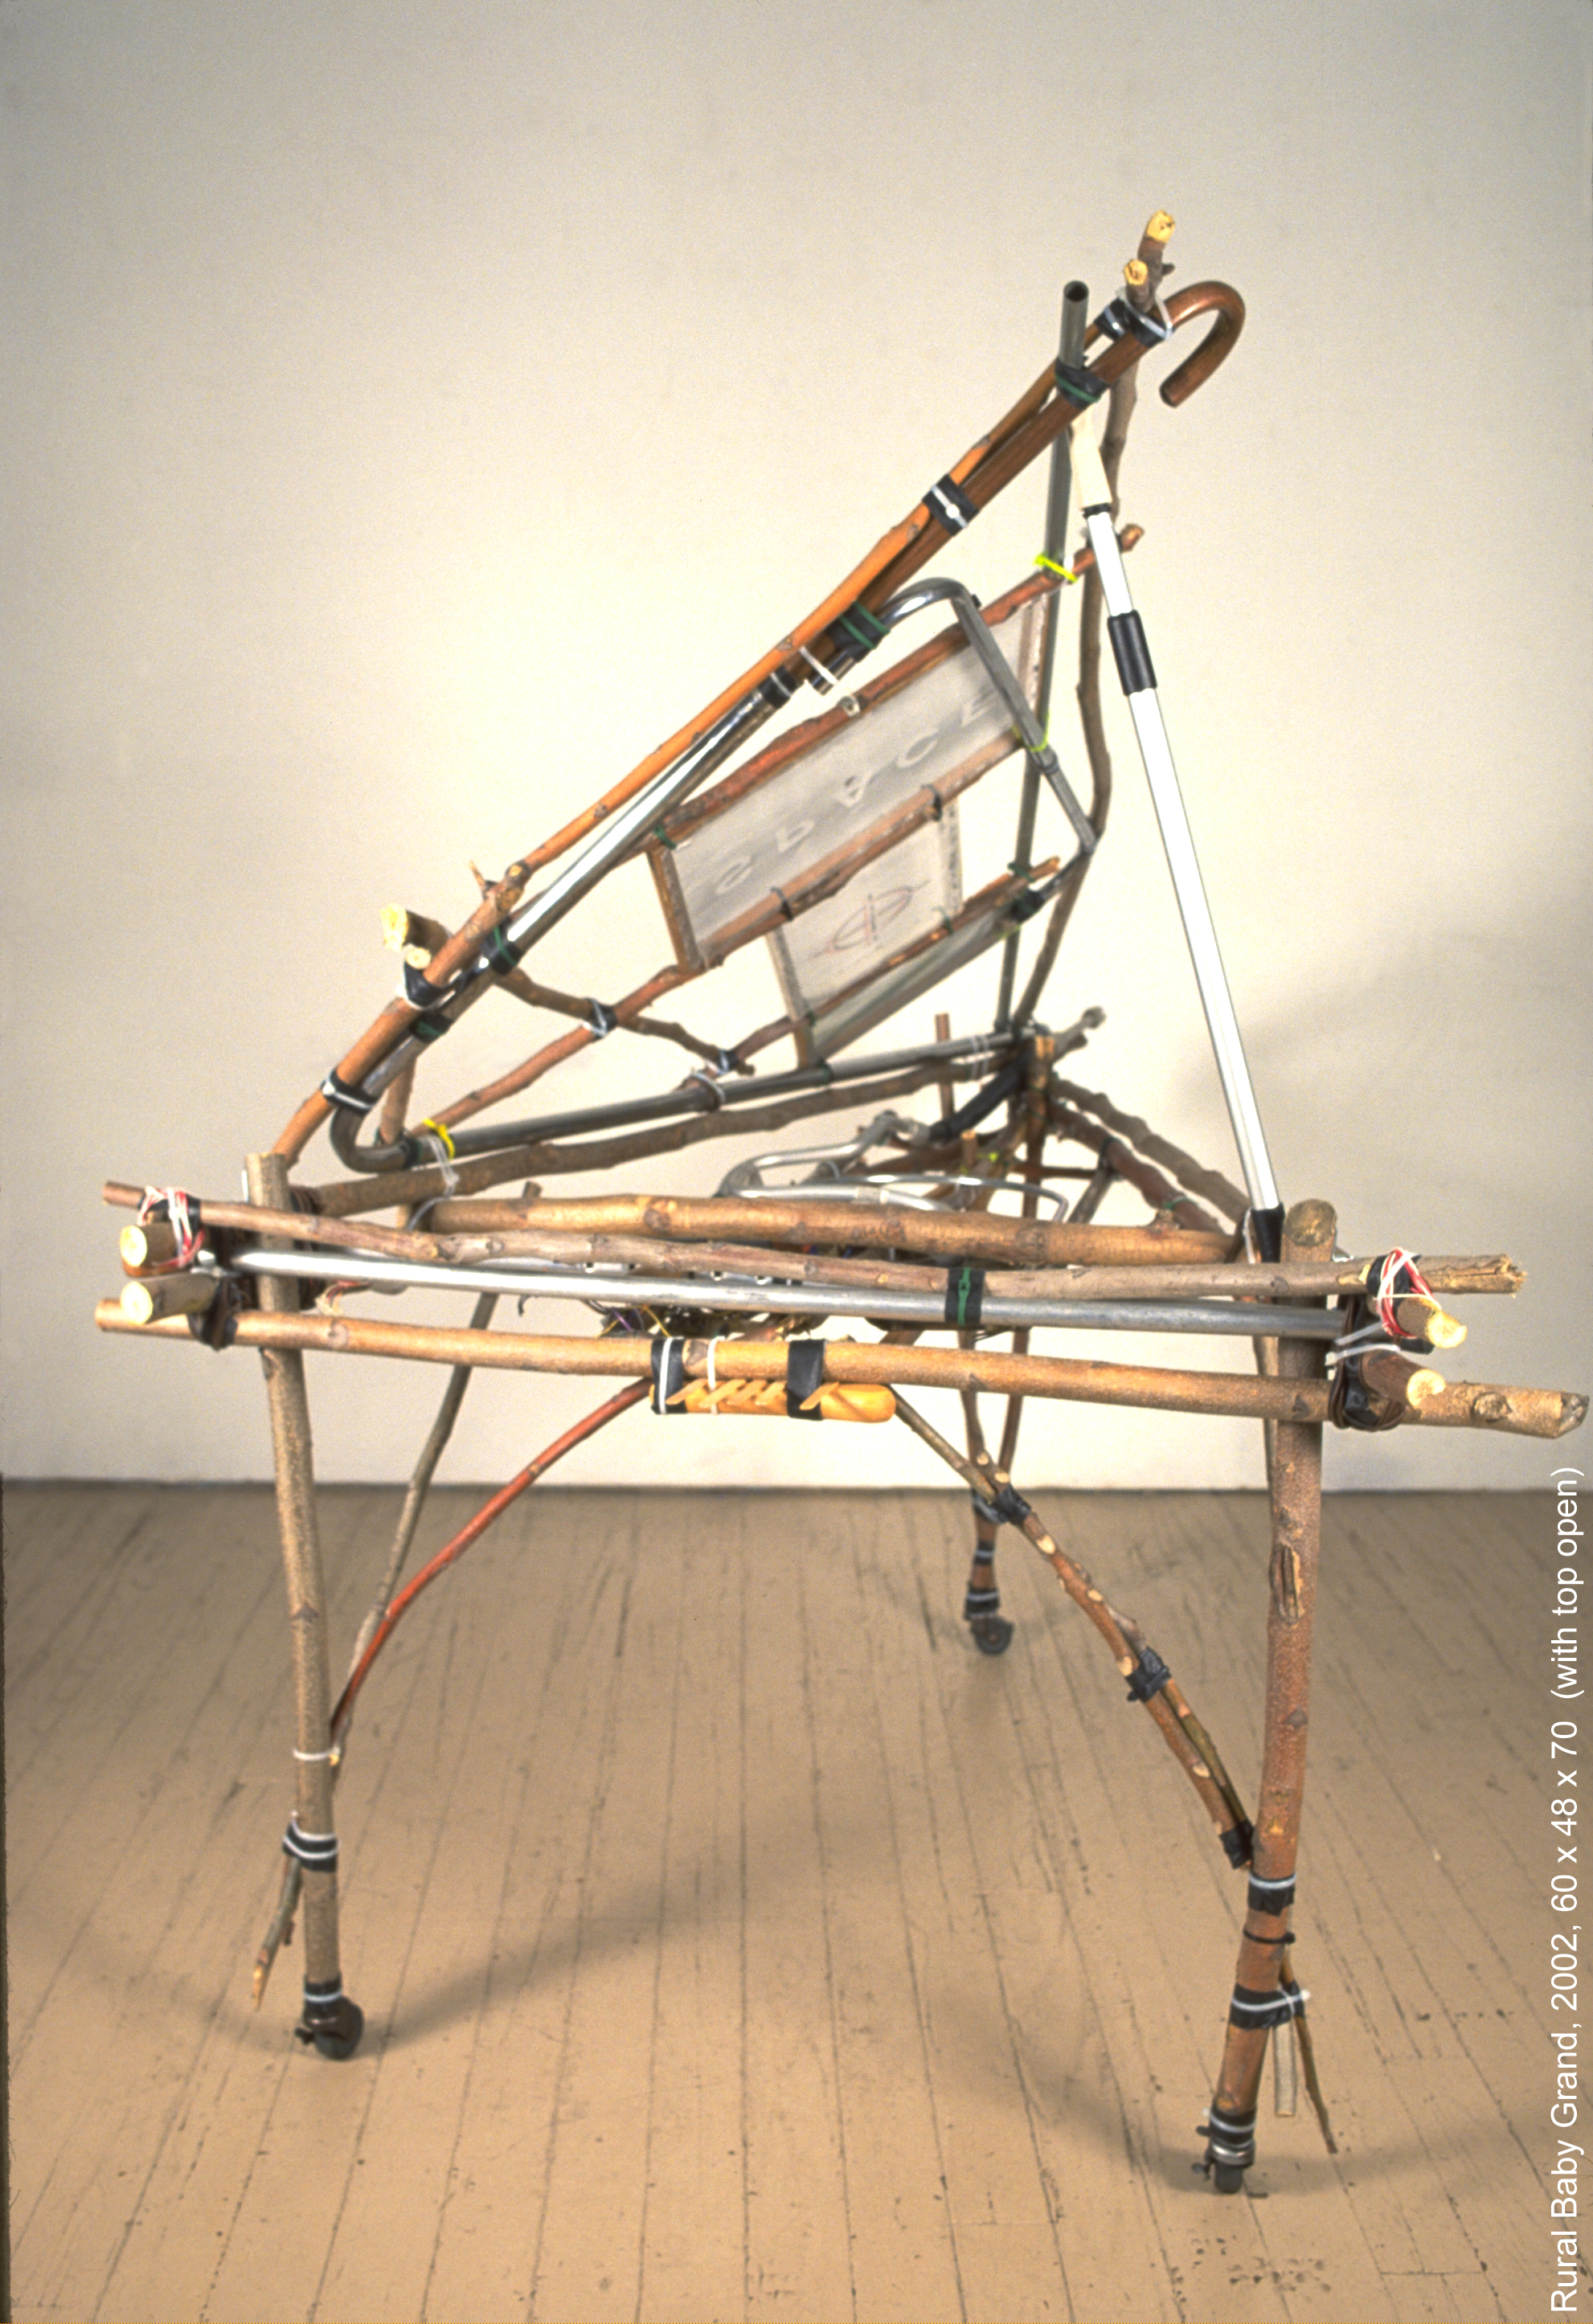 """'Rural Baby Grand' , 2002, 60 x 48 x 70 (with top open). Constructed humbly from branches, twigs, screens, a cane, a crutch, and bits of discarded electronics, in an """"Adirondack"""" style, the piano exudes a transparent poetic folk art quality as it mixes """"high"""" and """"low"""" art forms. The triangular body refers more to the harpsichord than the modern grand with its sweeping wing lid and larger scale. Except for the hint of sound potential provided by a few tongue depressors as keys, the piano is silent."""